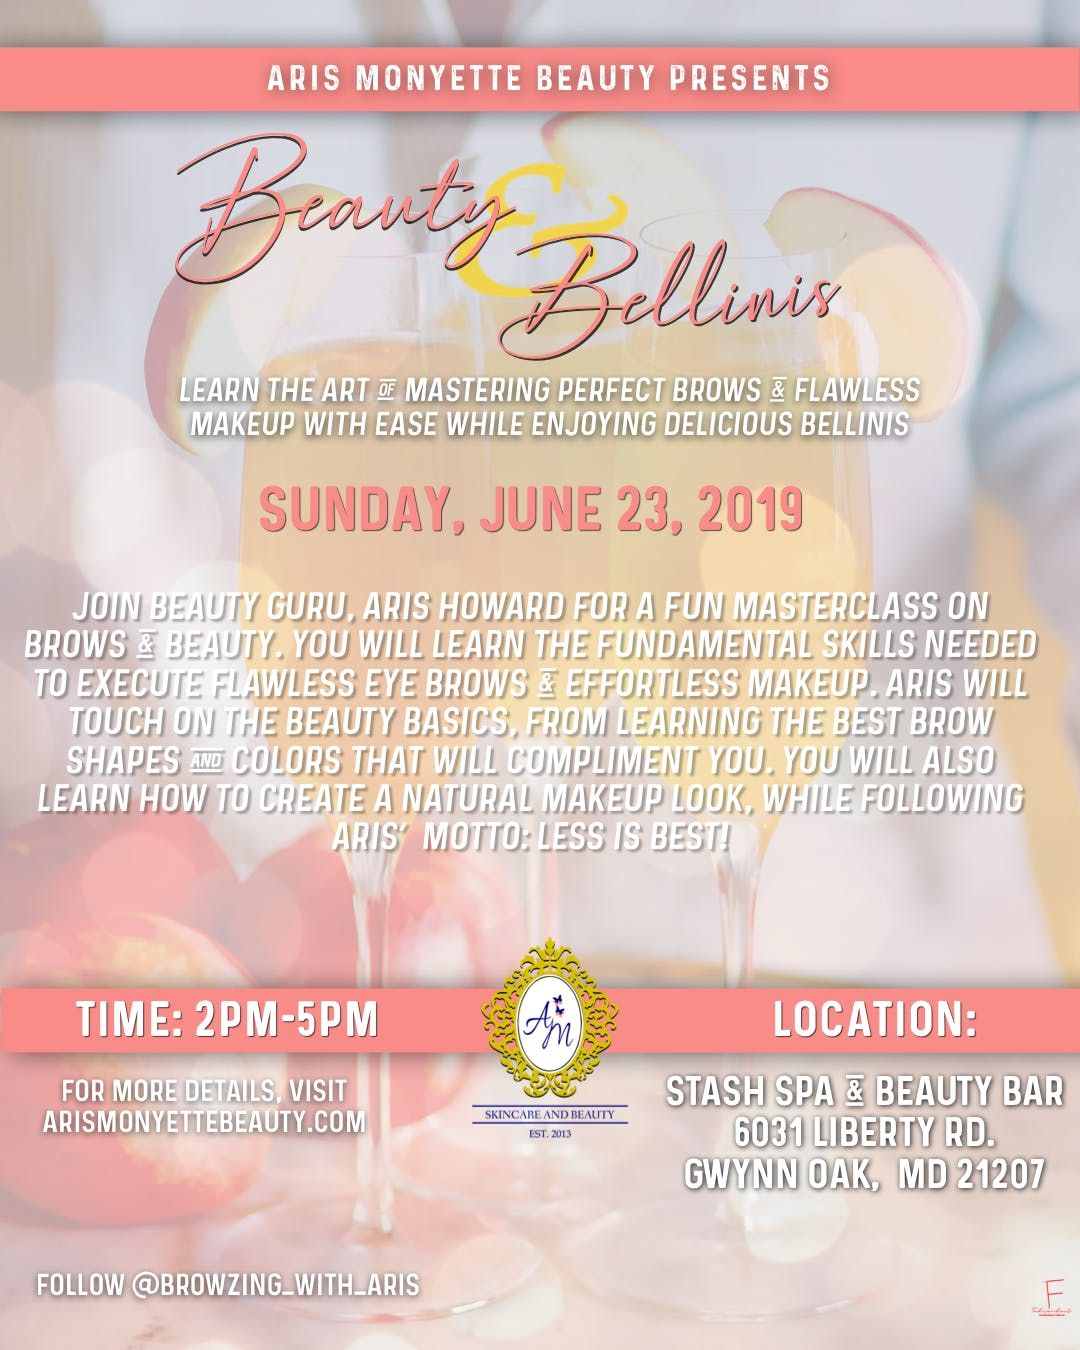 Beauty, Brows & Bellini's at Stash Spa and Beauty Bar, Baltimore